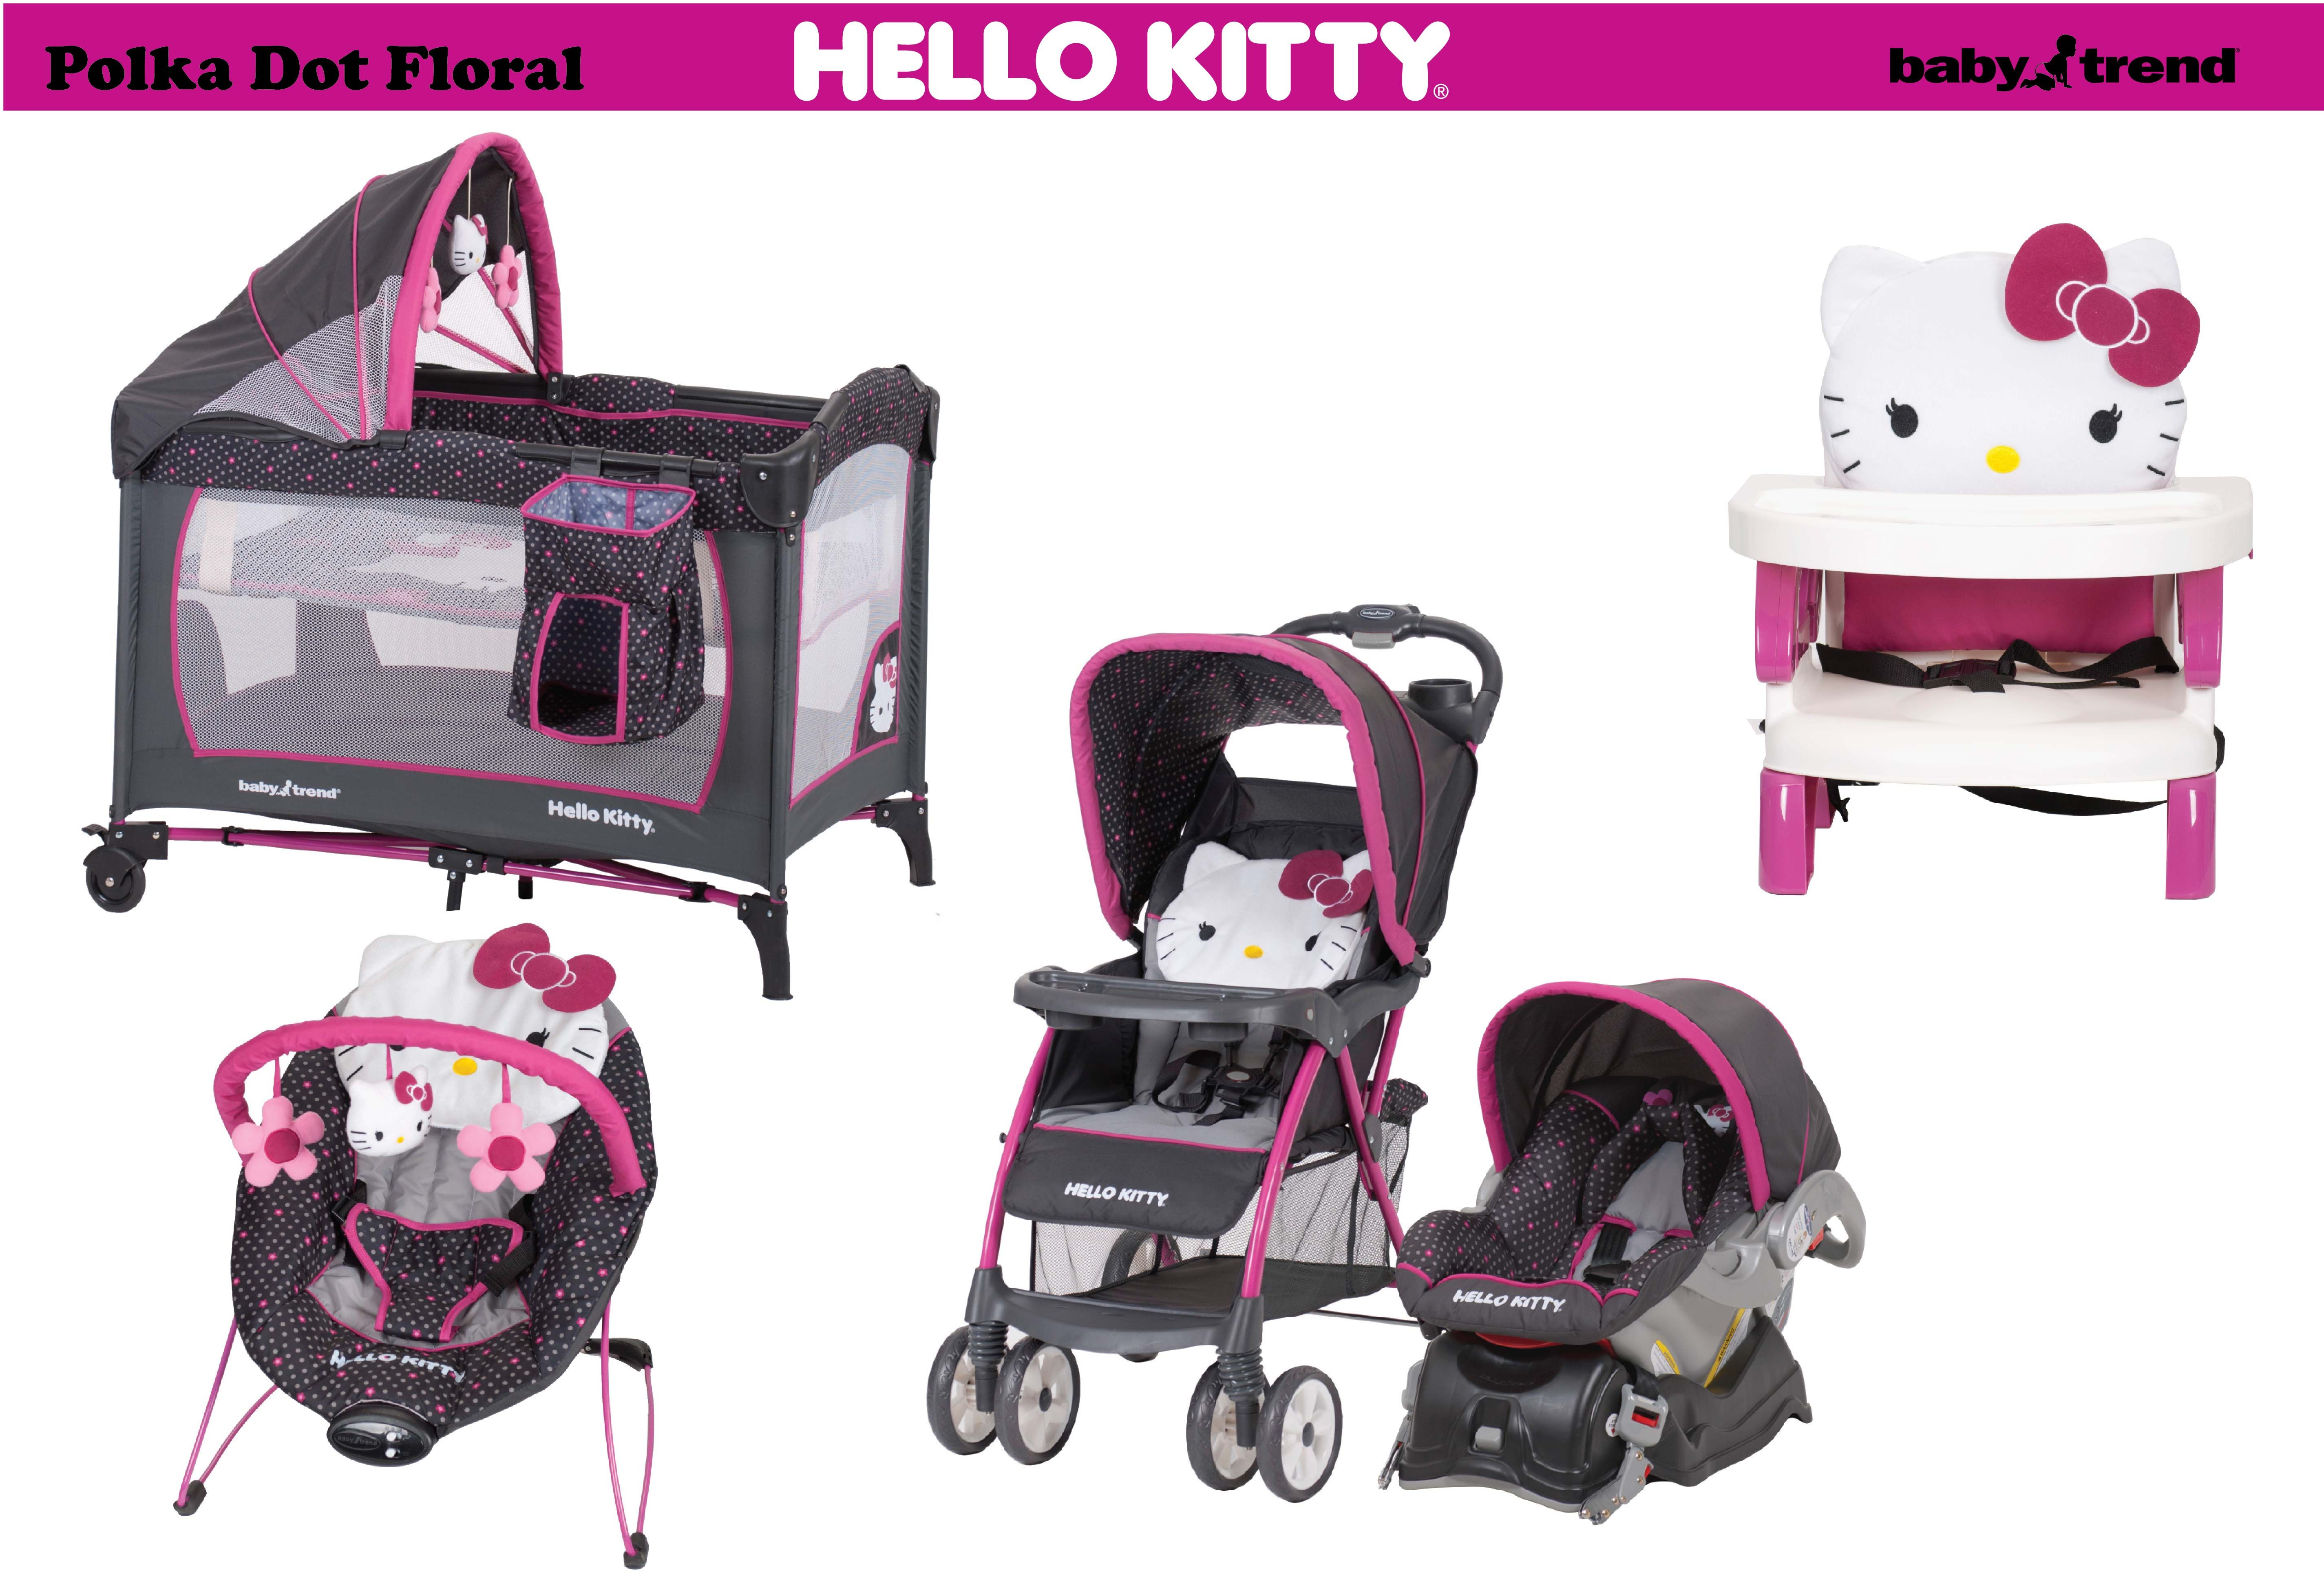 The Baby Trend Hello Kitty collection in Polka Dot Floral Fashion exclusively at Walmart